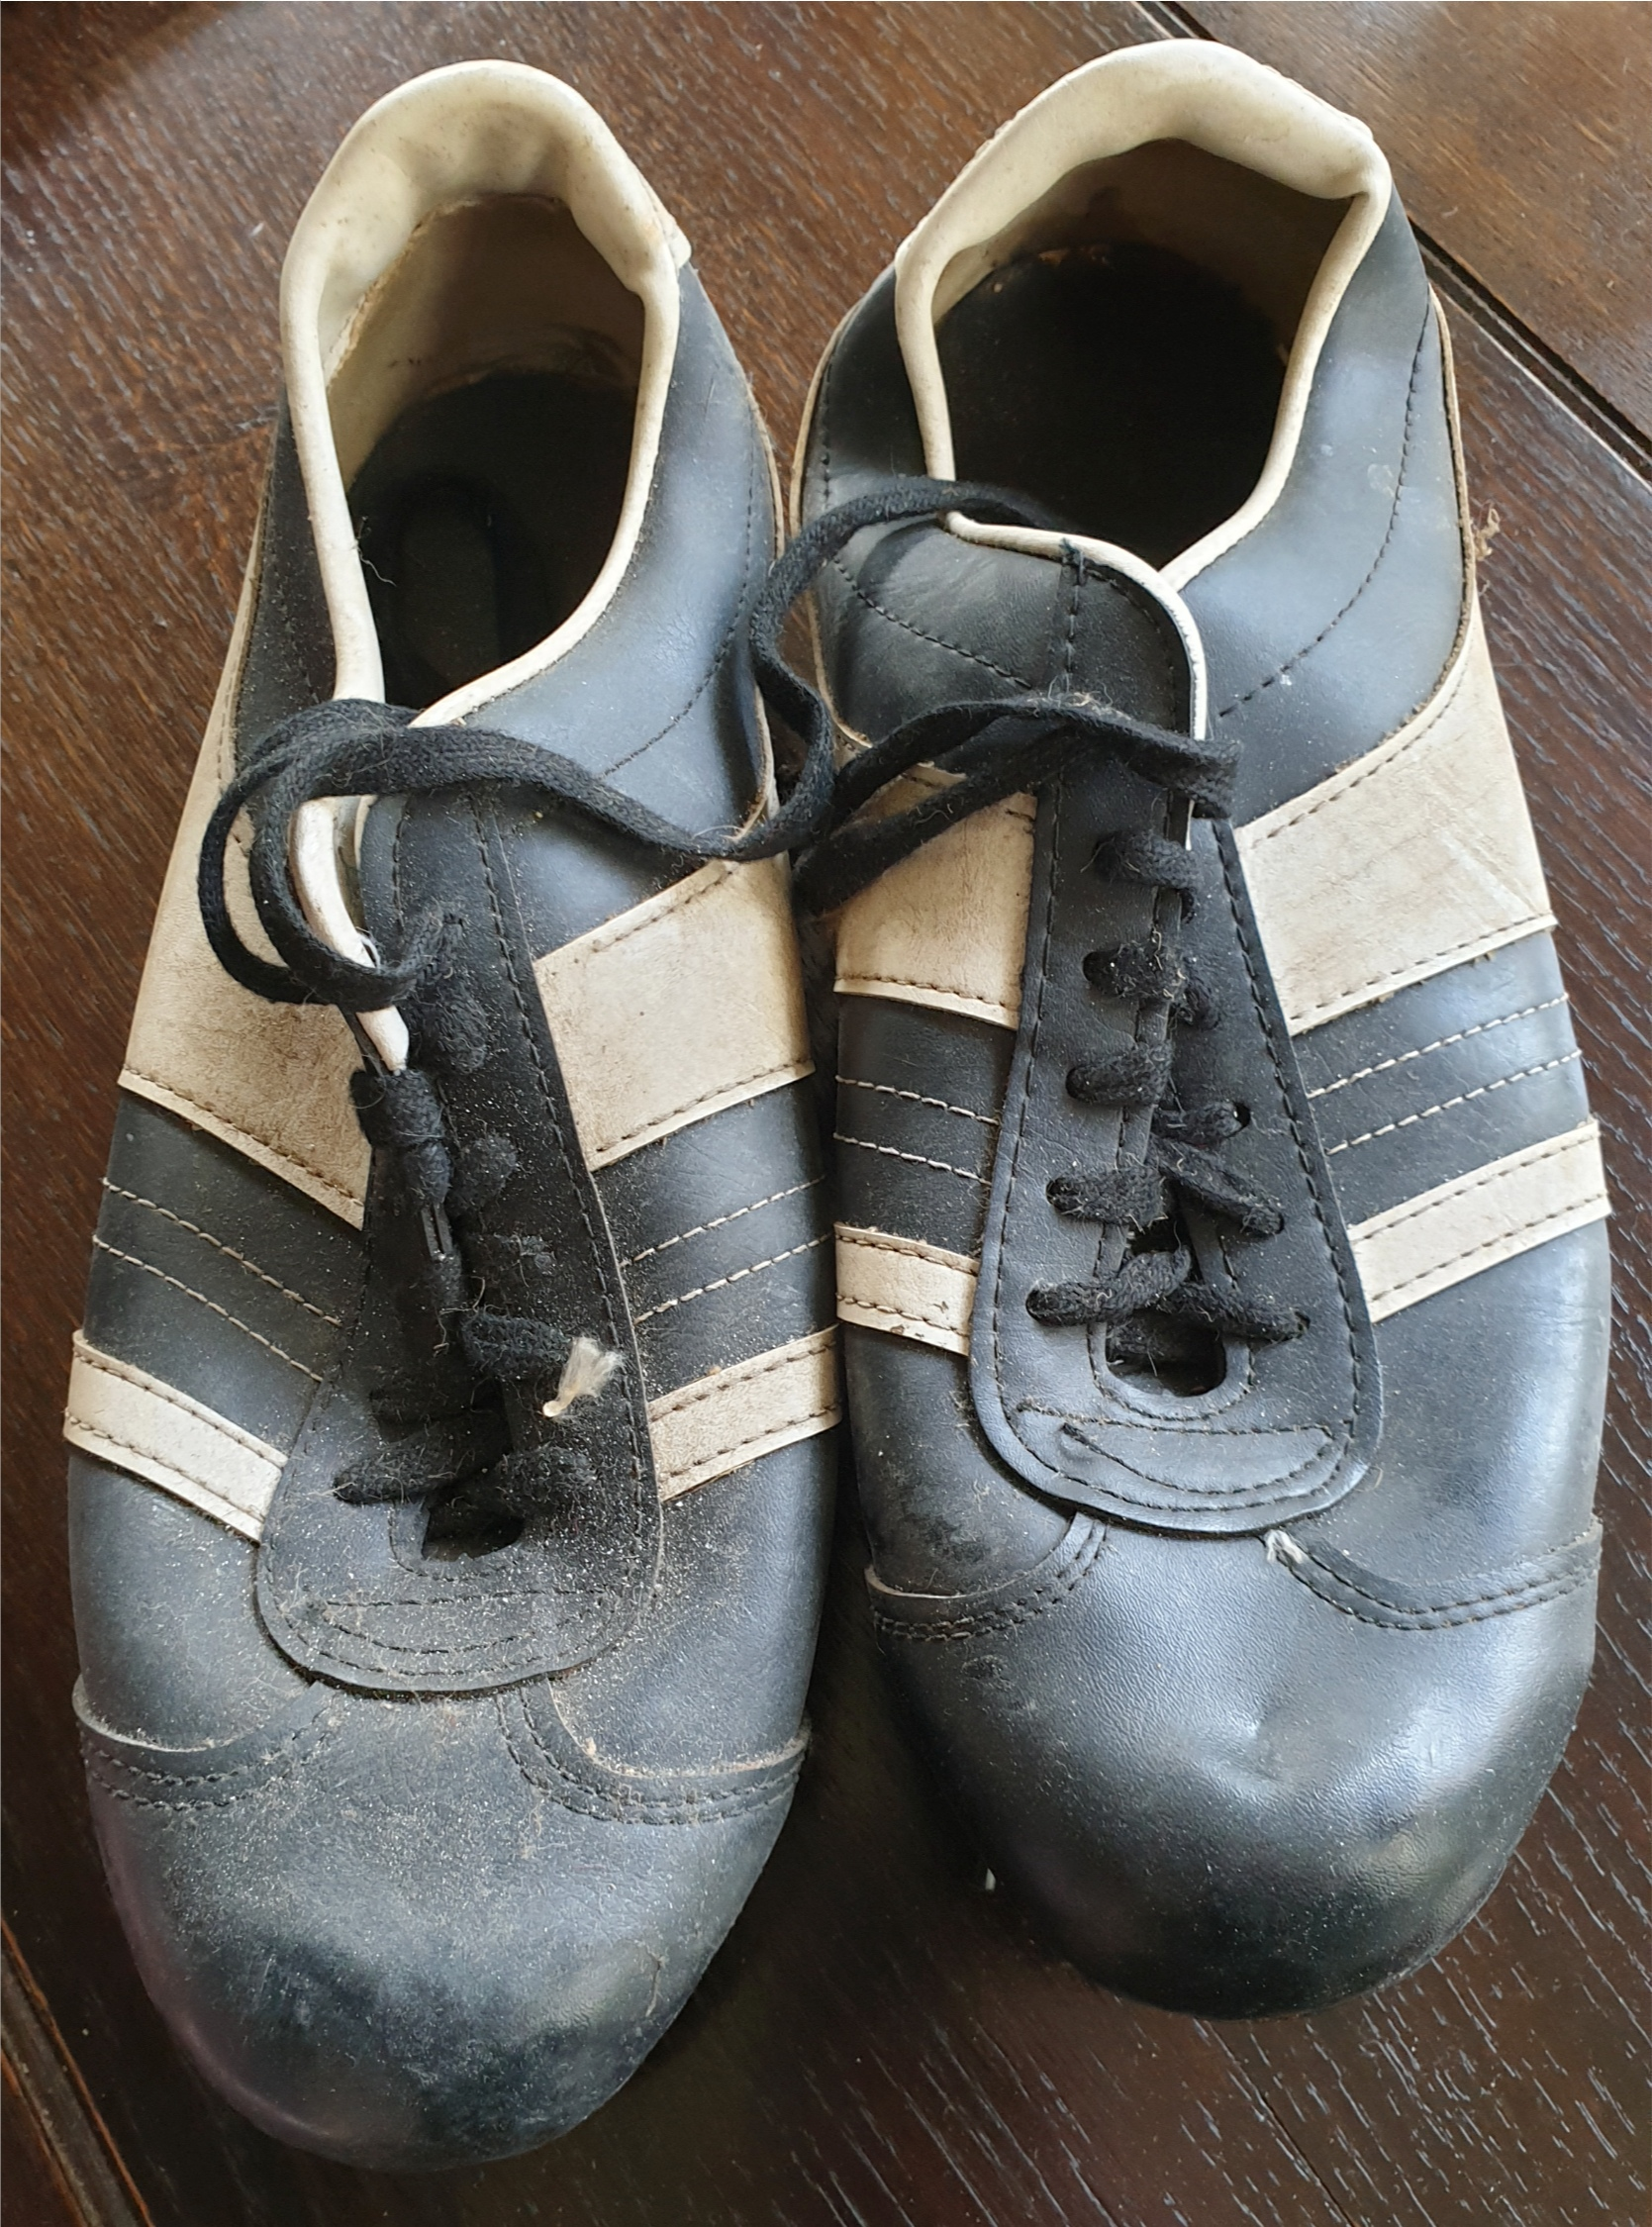 Lot 32 - Vintage Retro Kitsch Leather Football Boots c1970's Blue & White UK Size 10